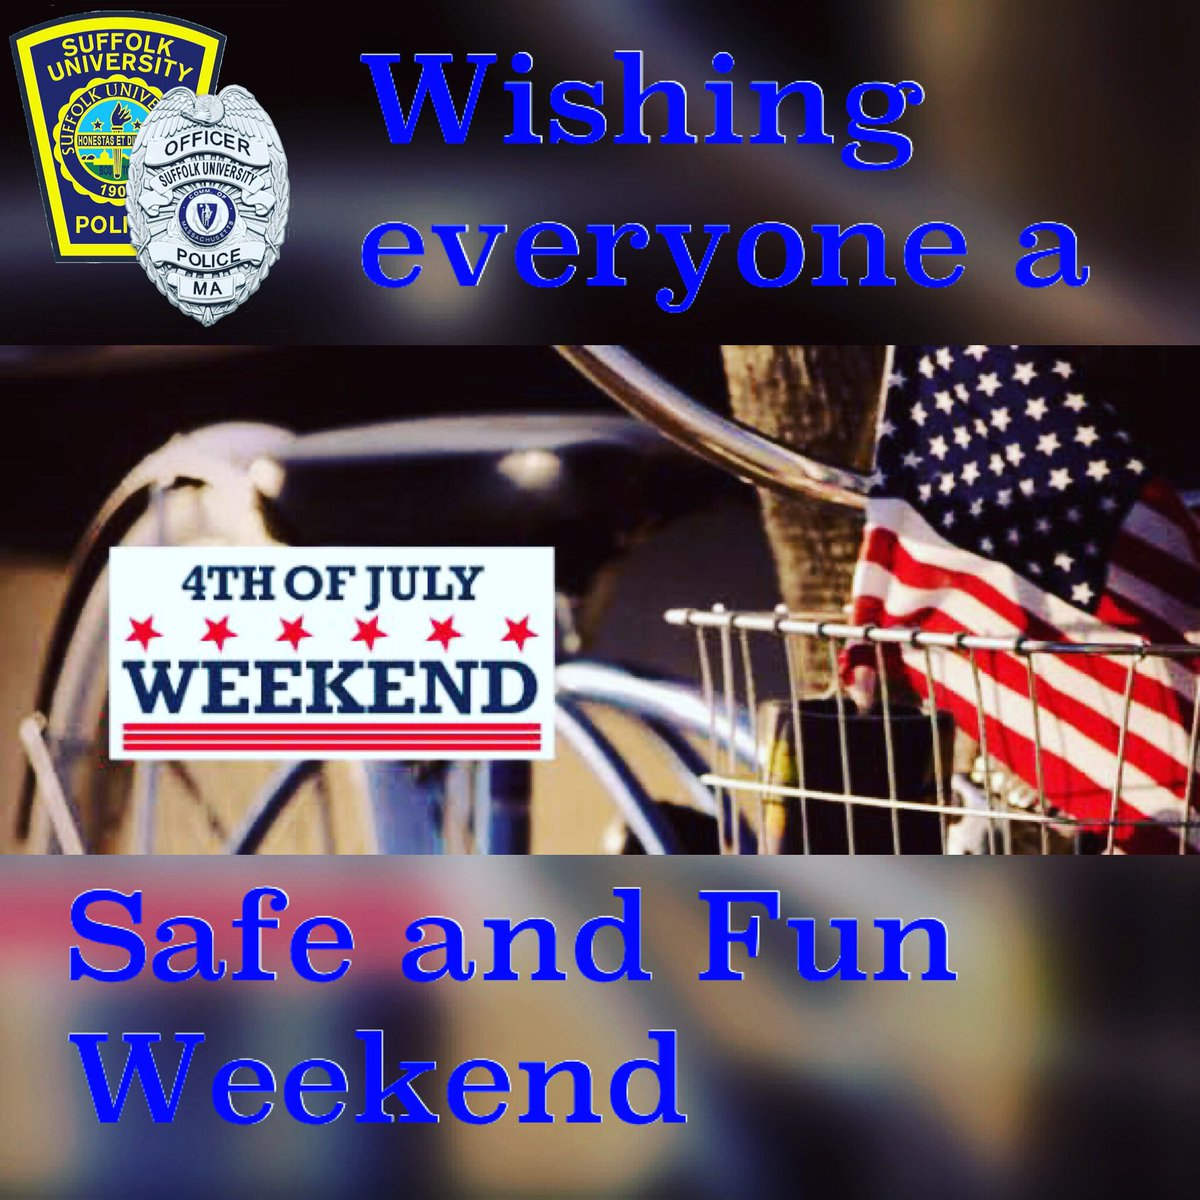 Have a Great and Safe July 4th weekend! Please remember to practice social distancing and wear face coverings if out, and if visiting areas, be sure to review the guidelines before heading out. https://t.co/cLini9SHib